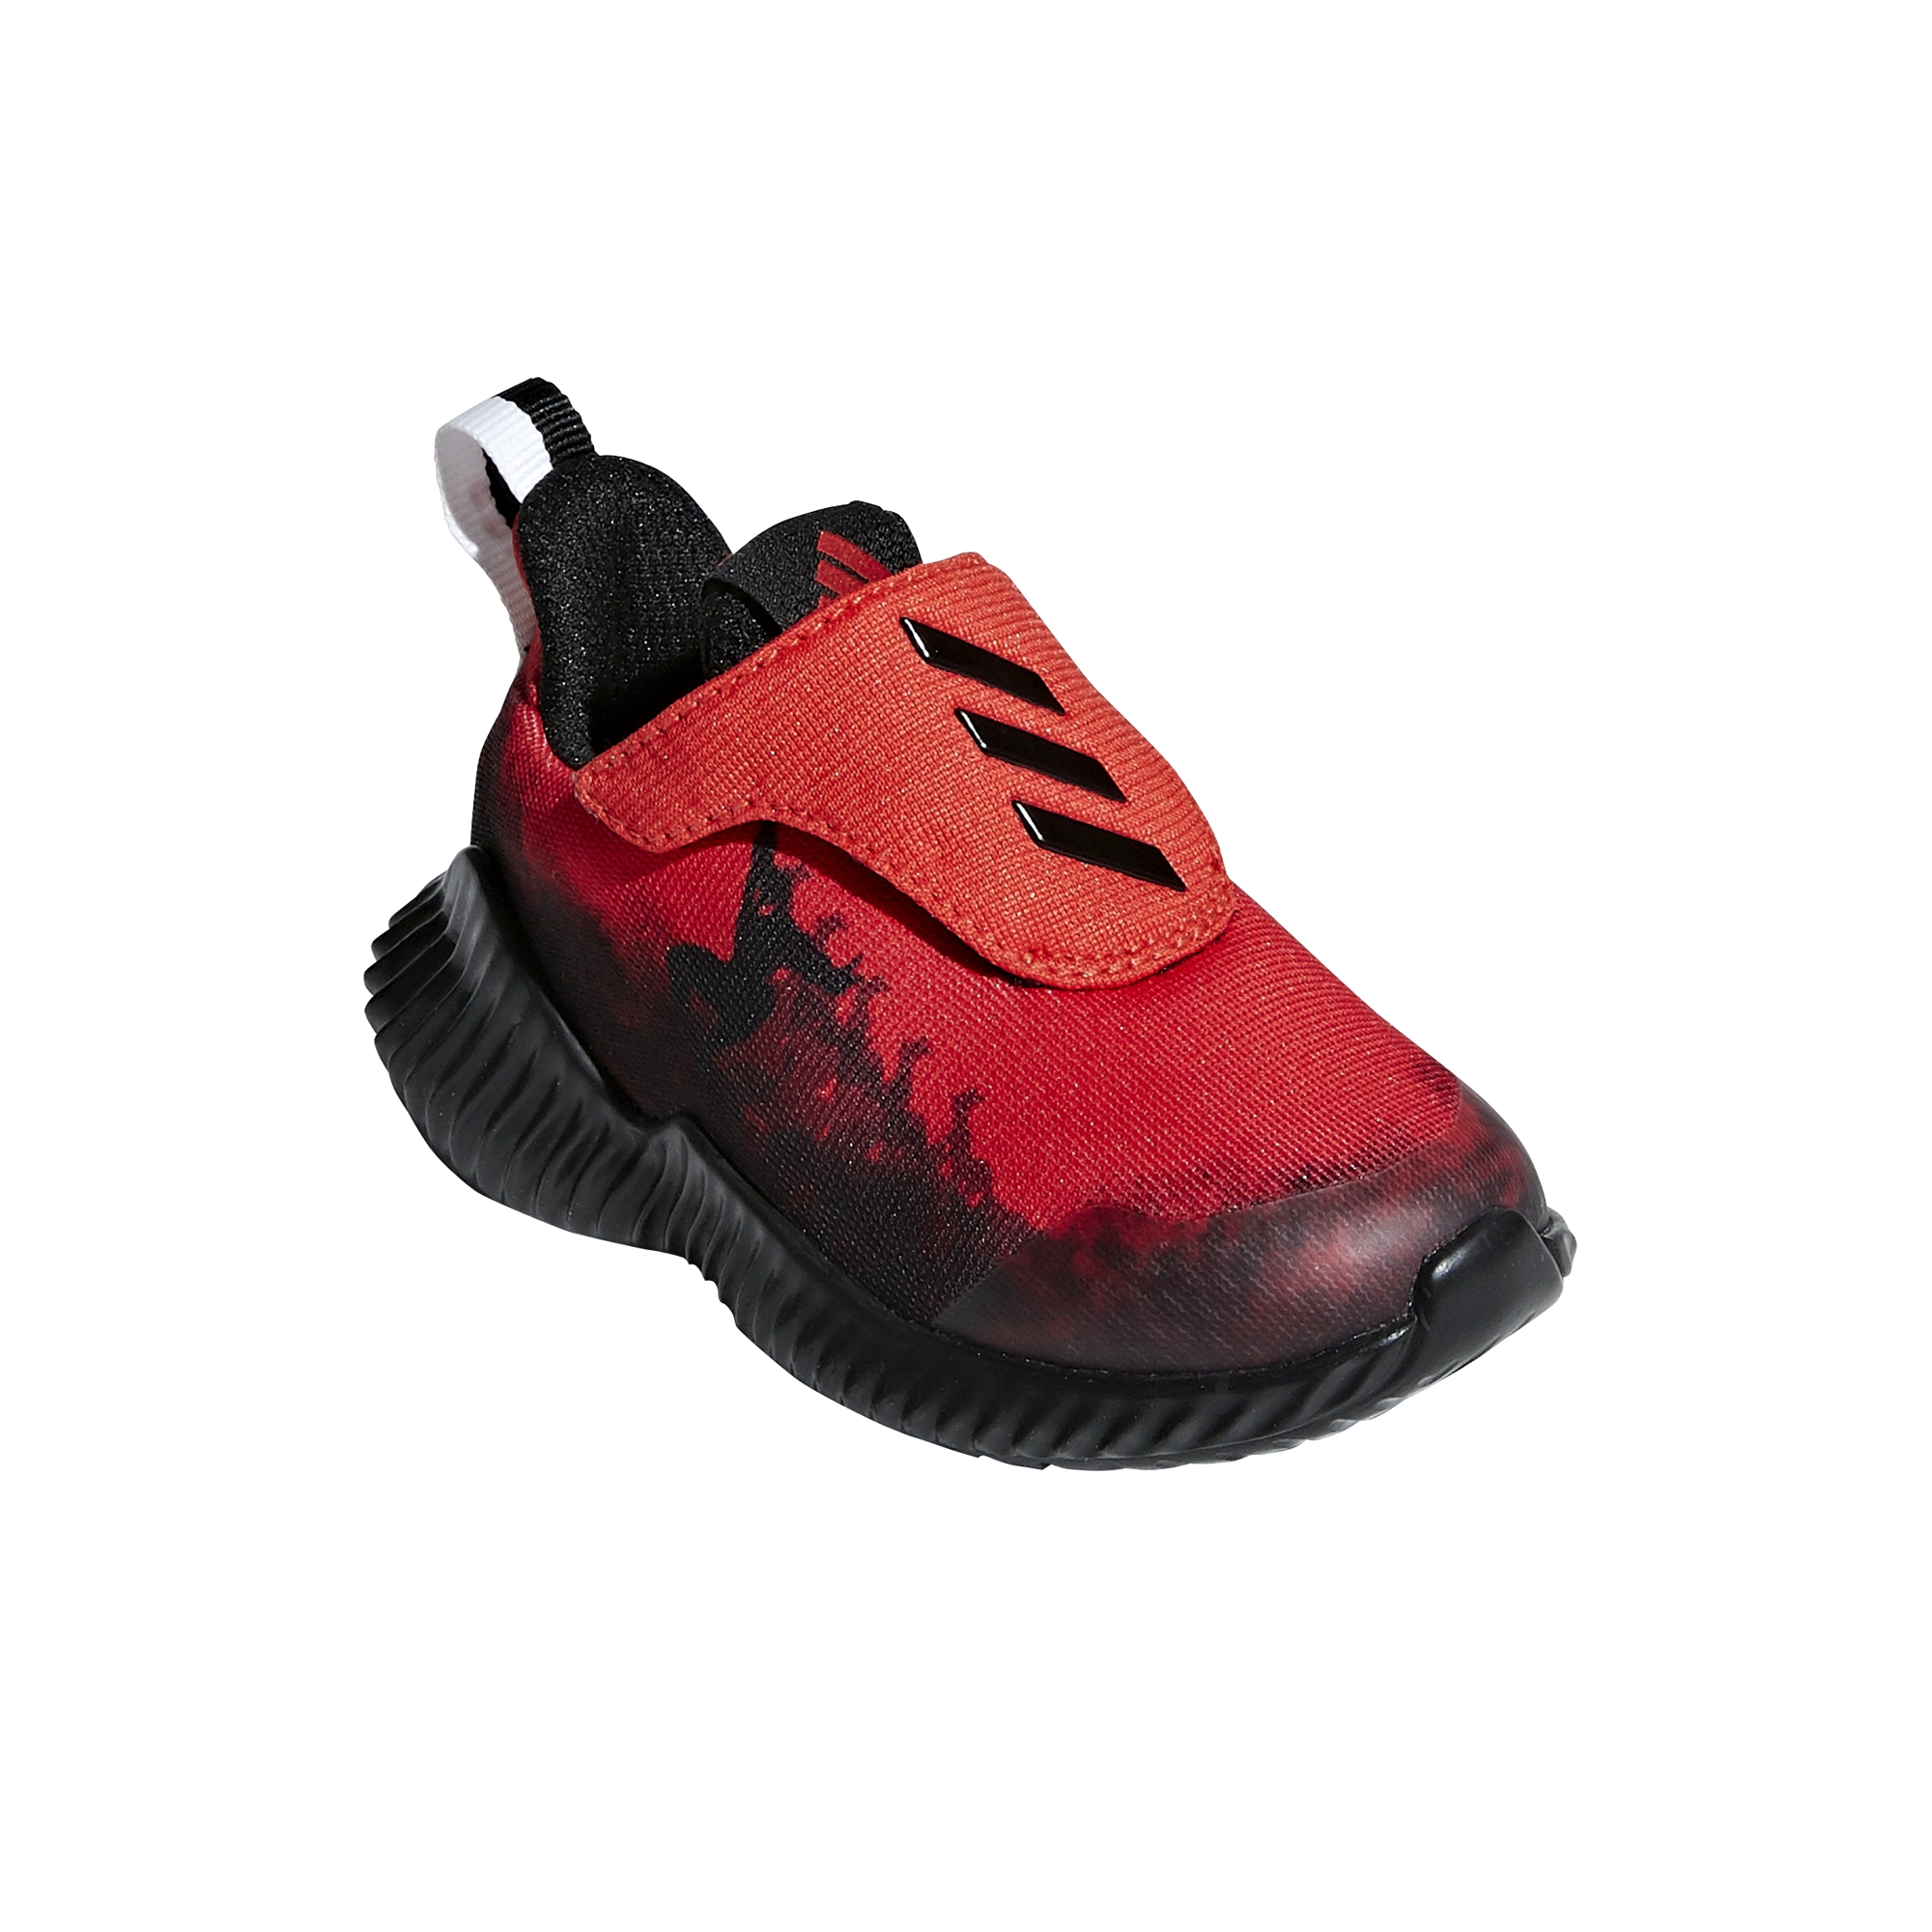 Man Adidas Fortarun Junior Chaussures Marvel Spider tQdrCxsh